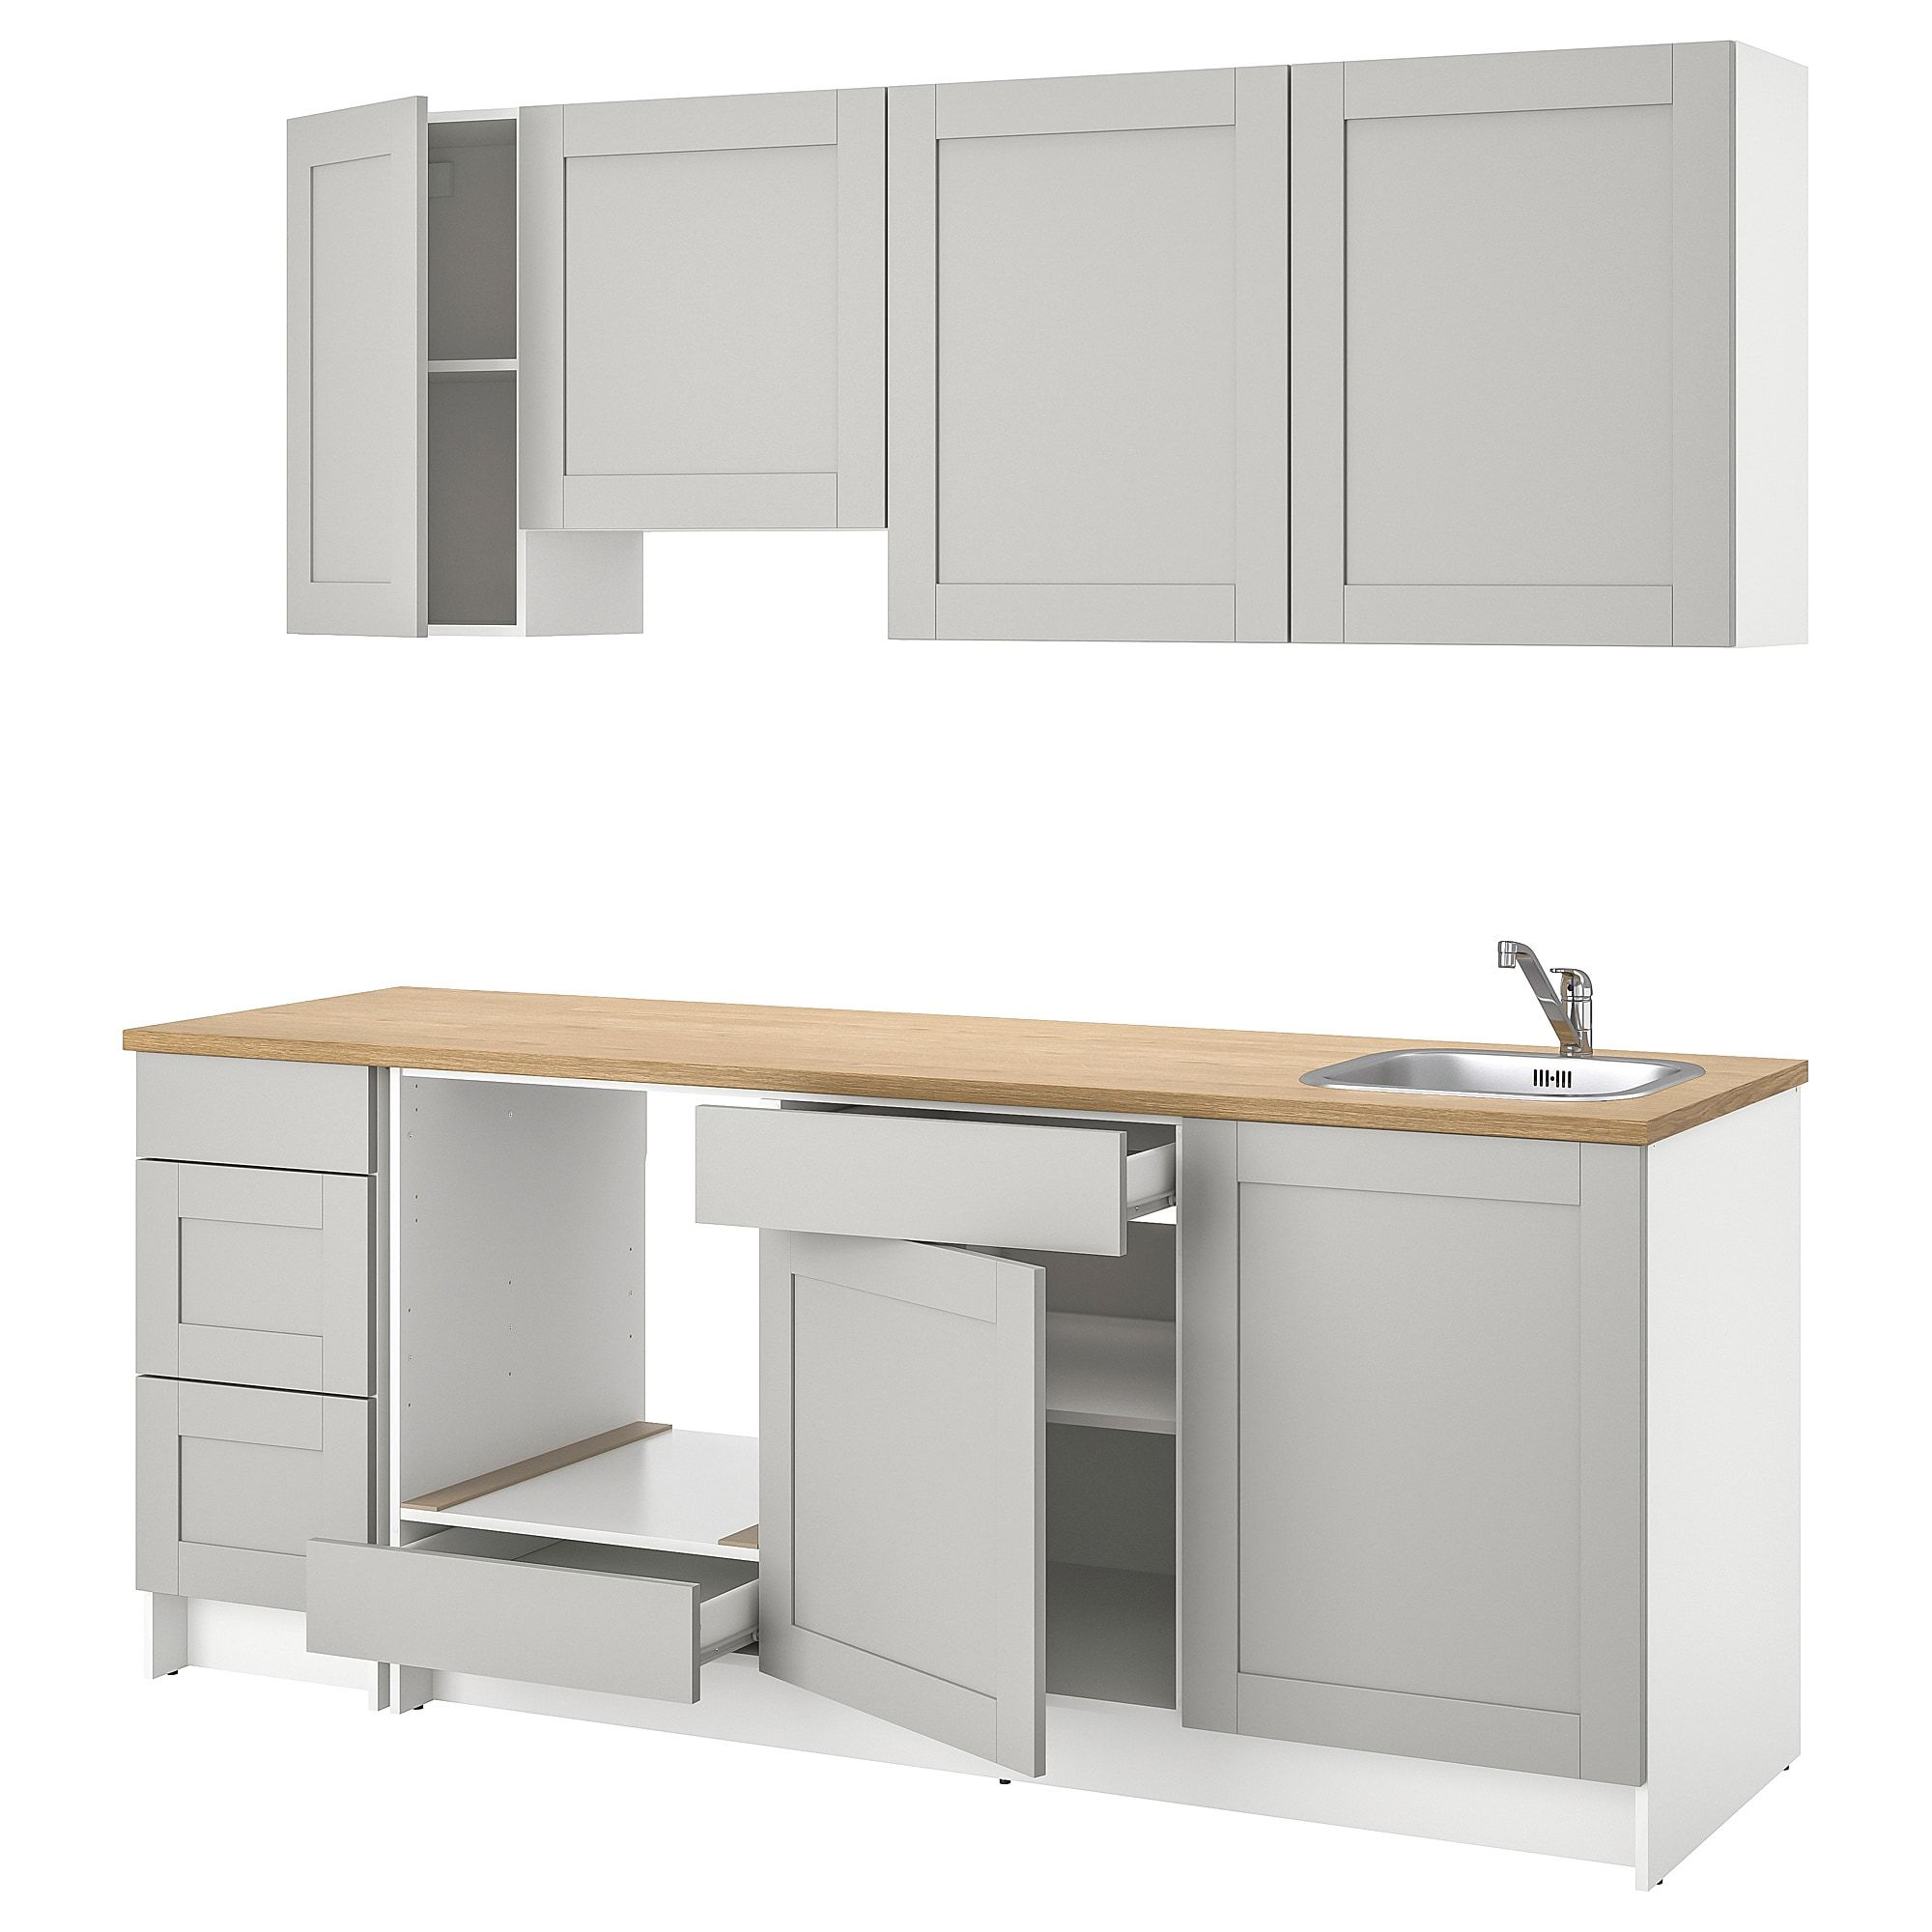 Best Ikea Knoxhult Kitchen Grey Only To Be Used With Glass 400 x 300